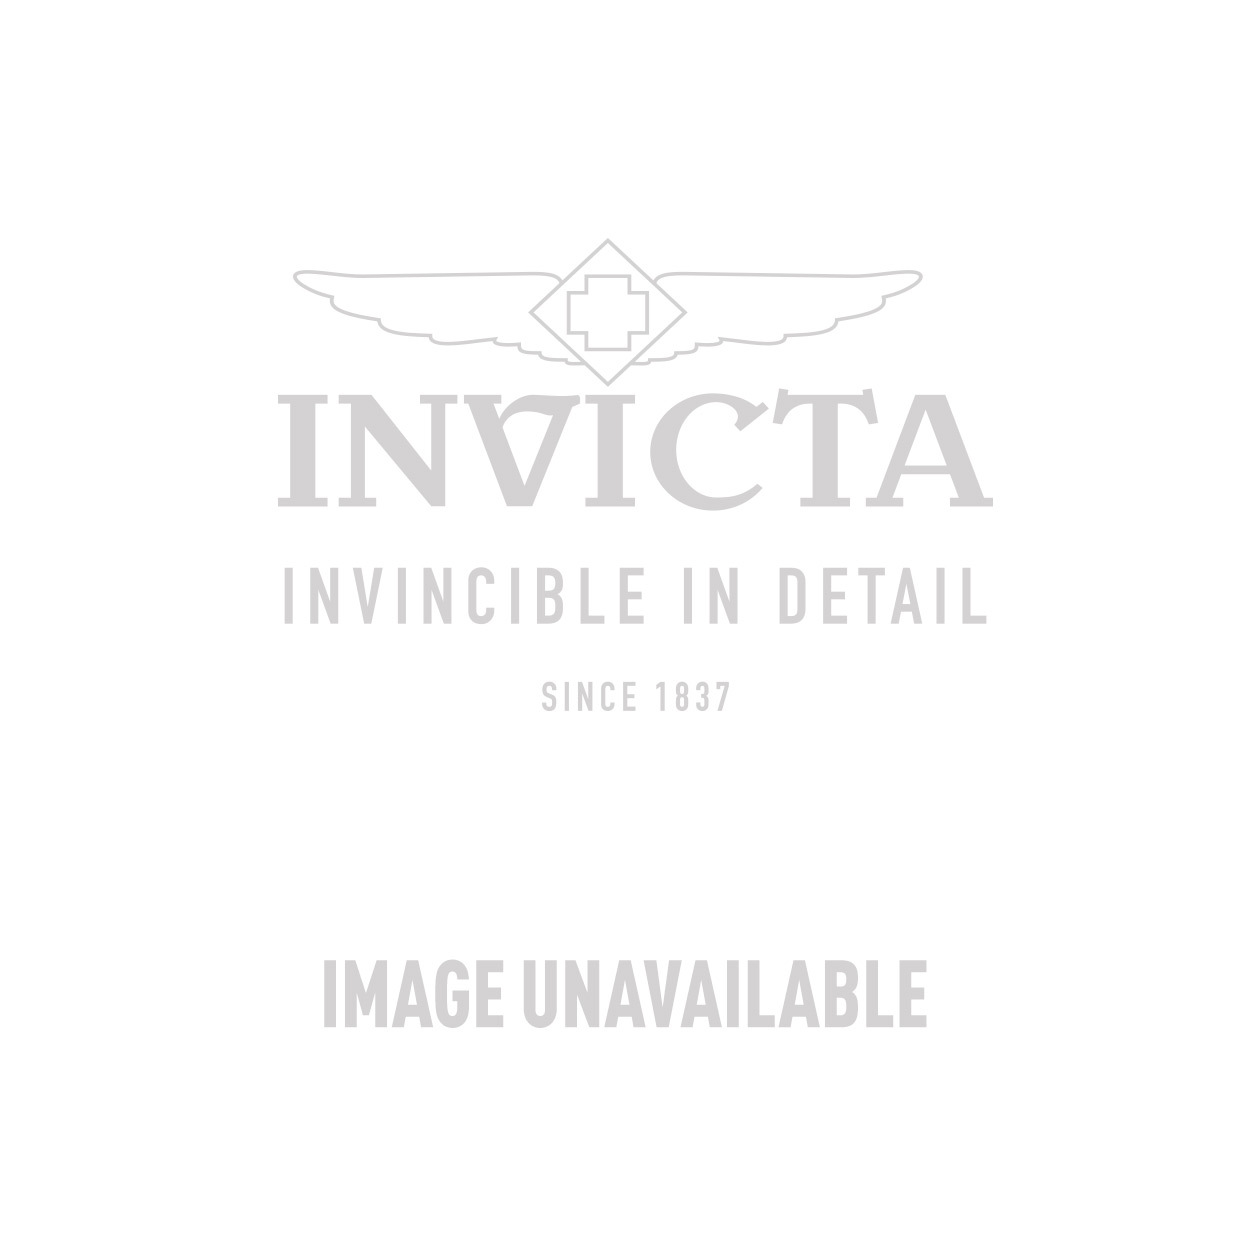 Invicta Specialty Swiss Movement Quartz Watch - Stainless Steel case with White tone Leather band - Model 12170